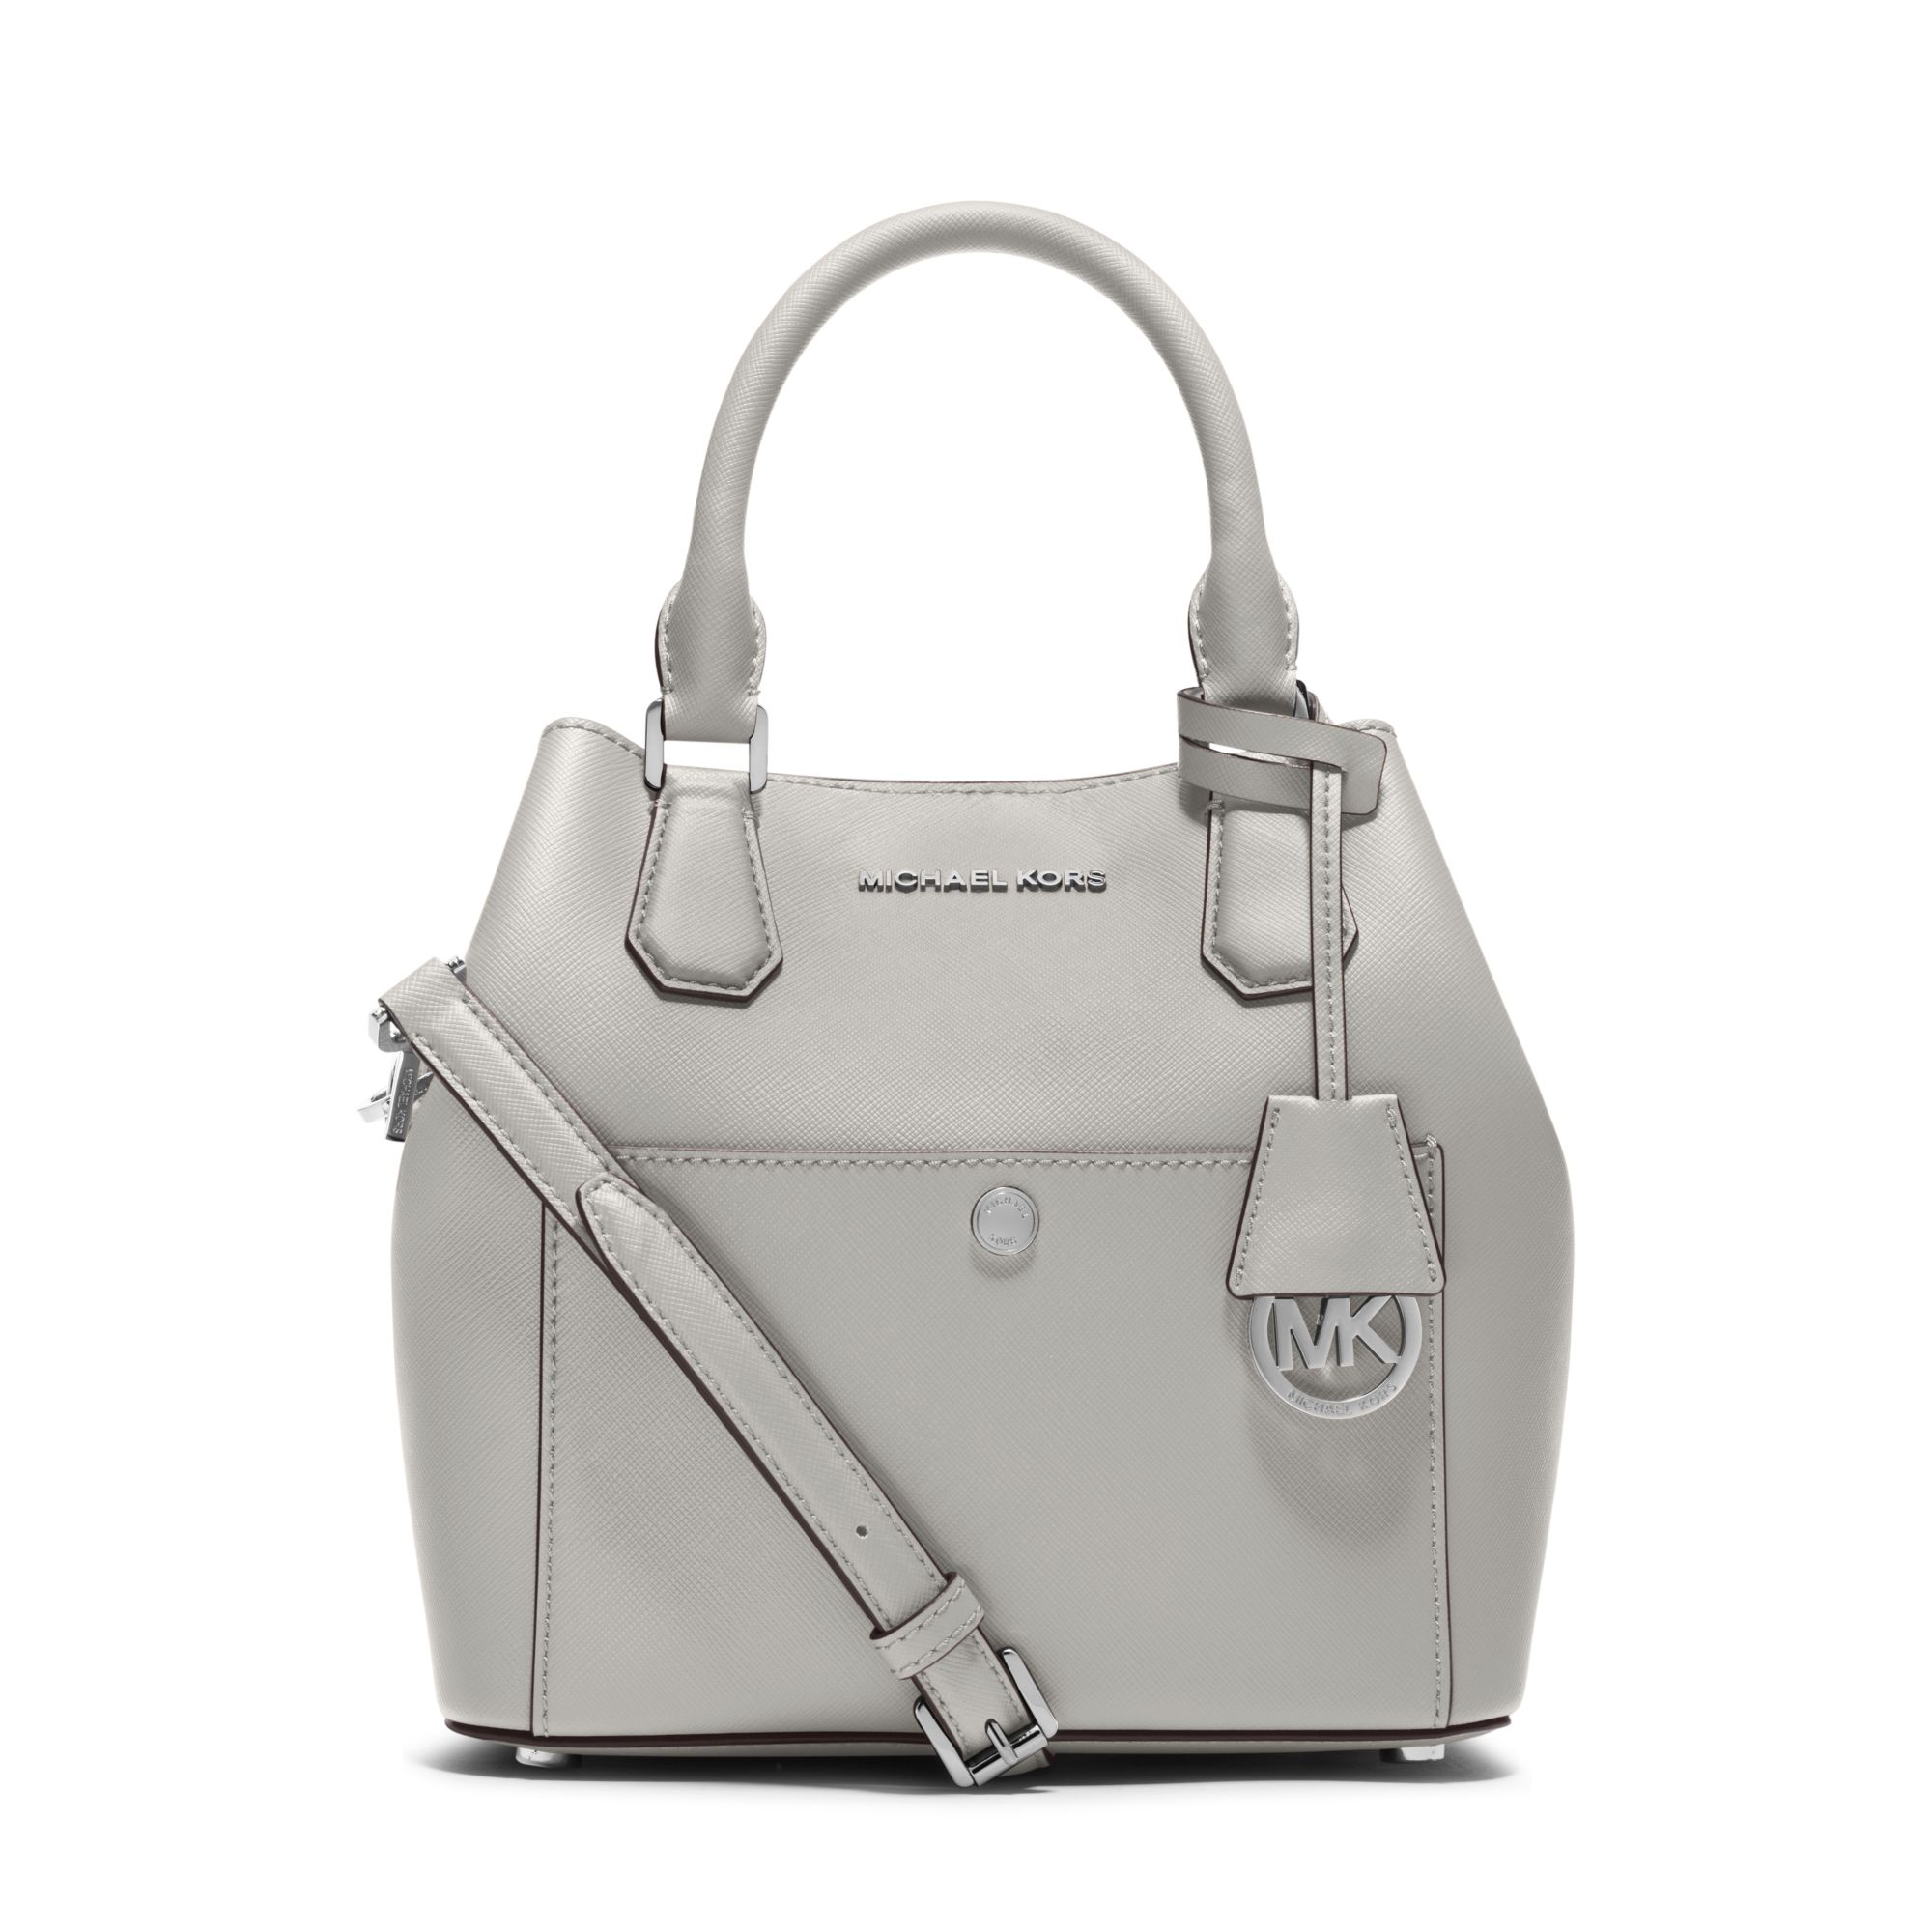 Lyst Michael Kors Greenwich Medium Saffiano Leather Satchel In White Bag Authentic Gallery